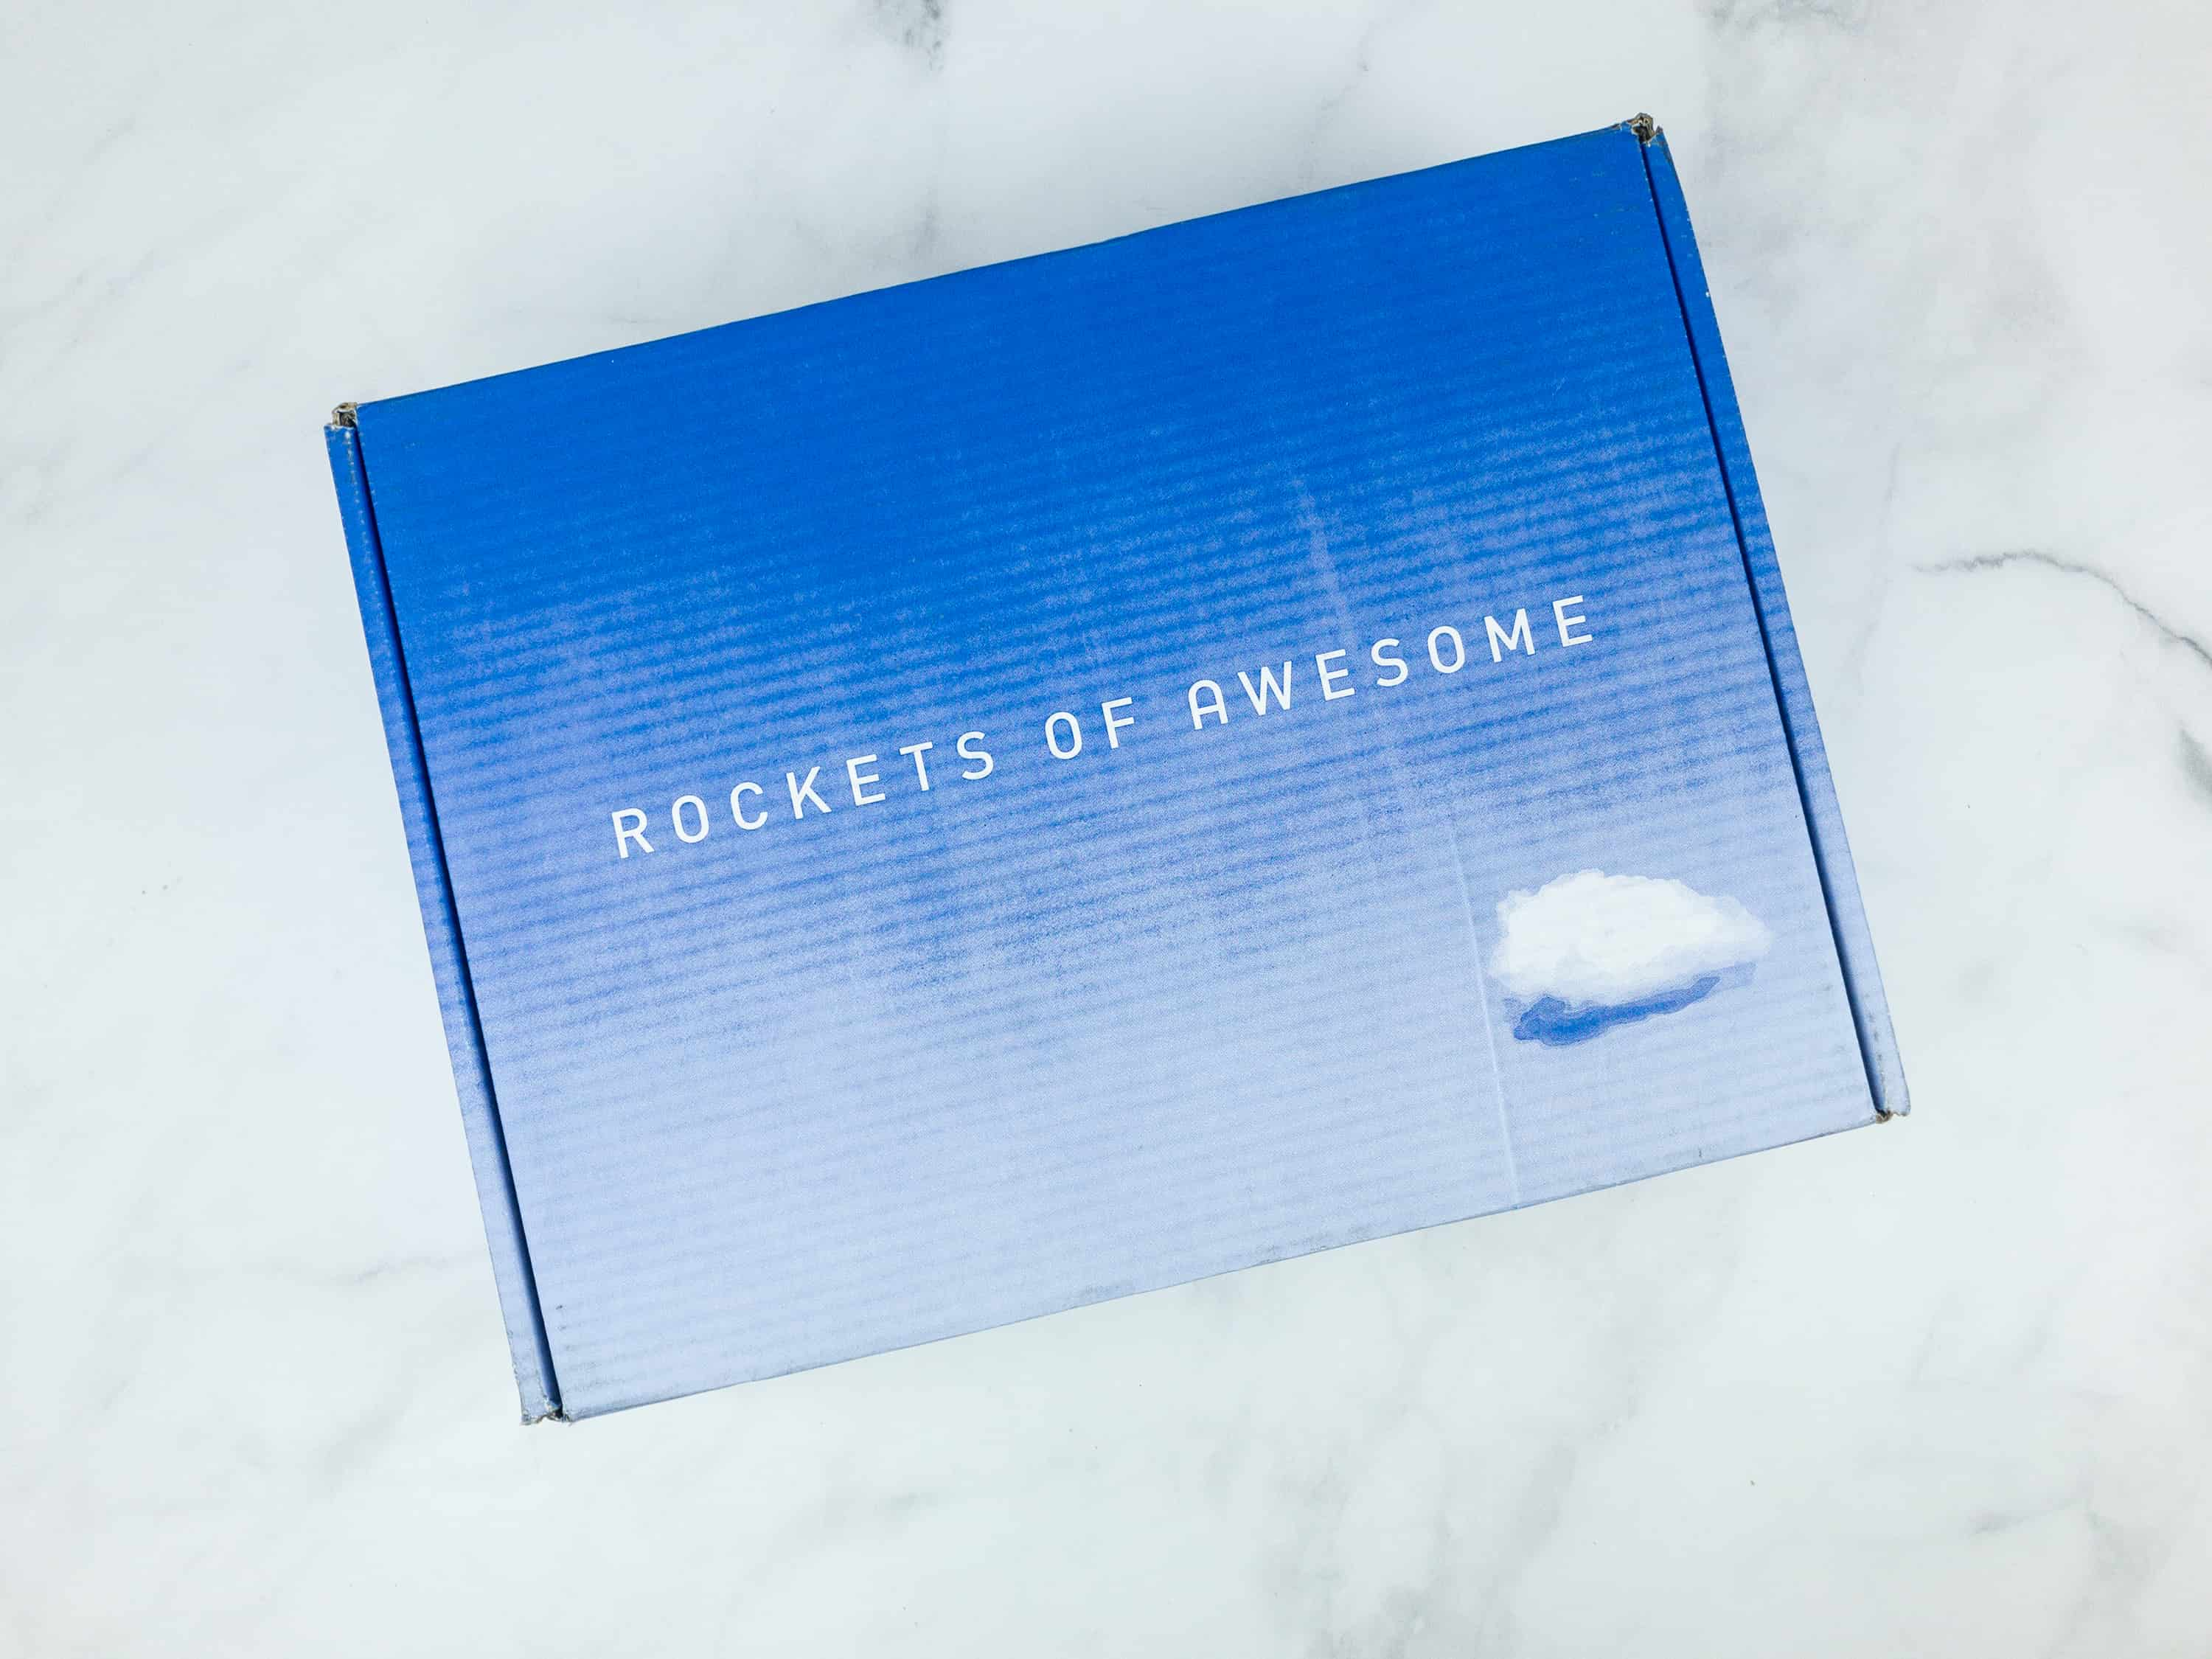 Rockets of Awesome Fall 2018 Subscription Box Review – Girls!